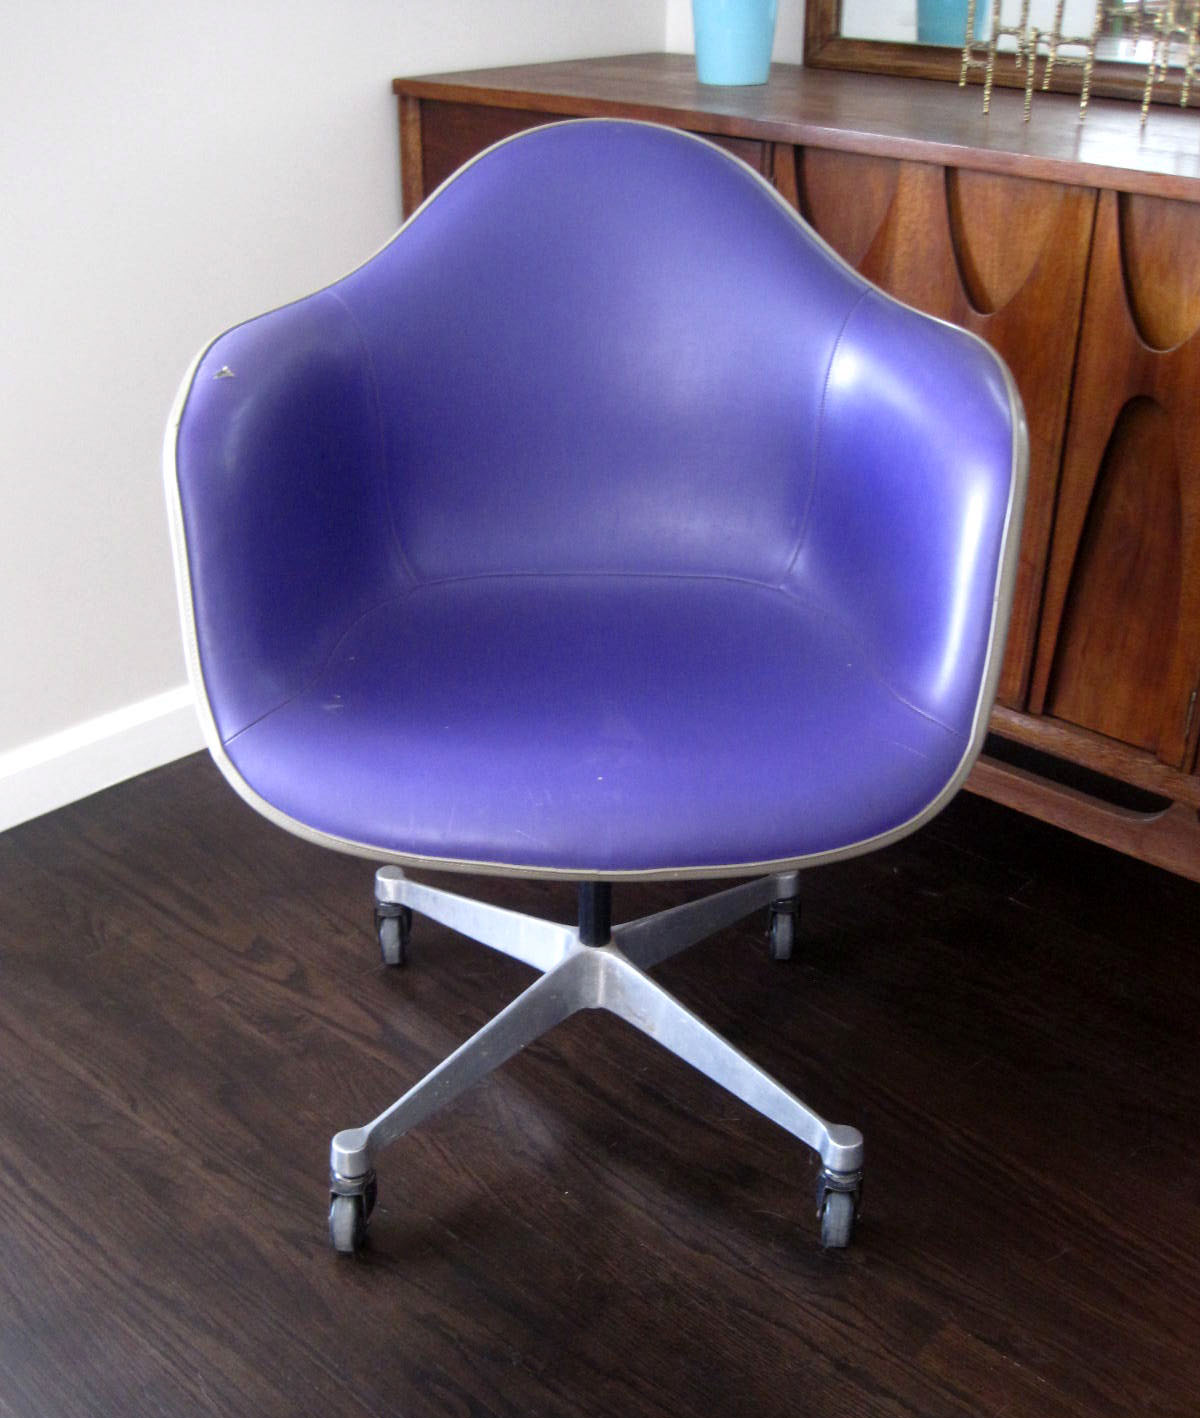 Herman Miller Chairs Vintage Slipcover Chair And A Half Rhan Mid Century Modern Blog Score Eames Shell Rolling Office